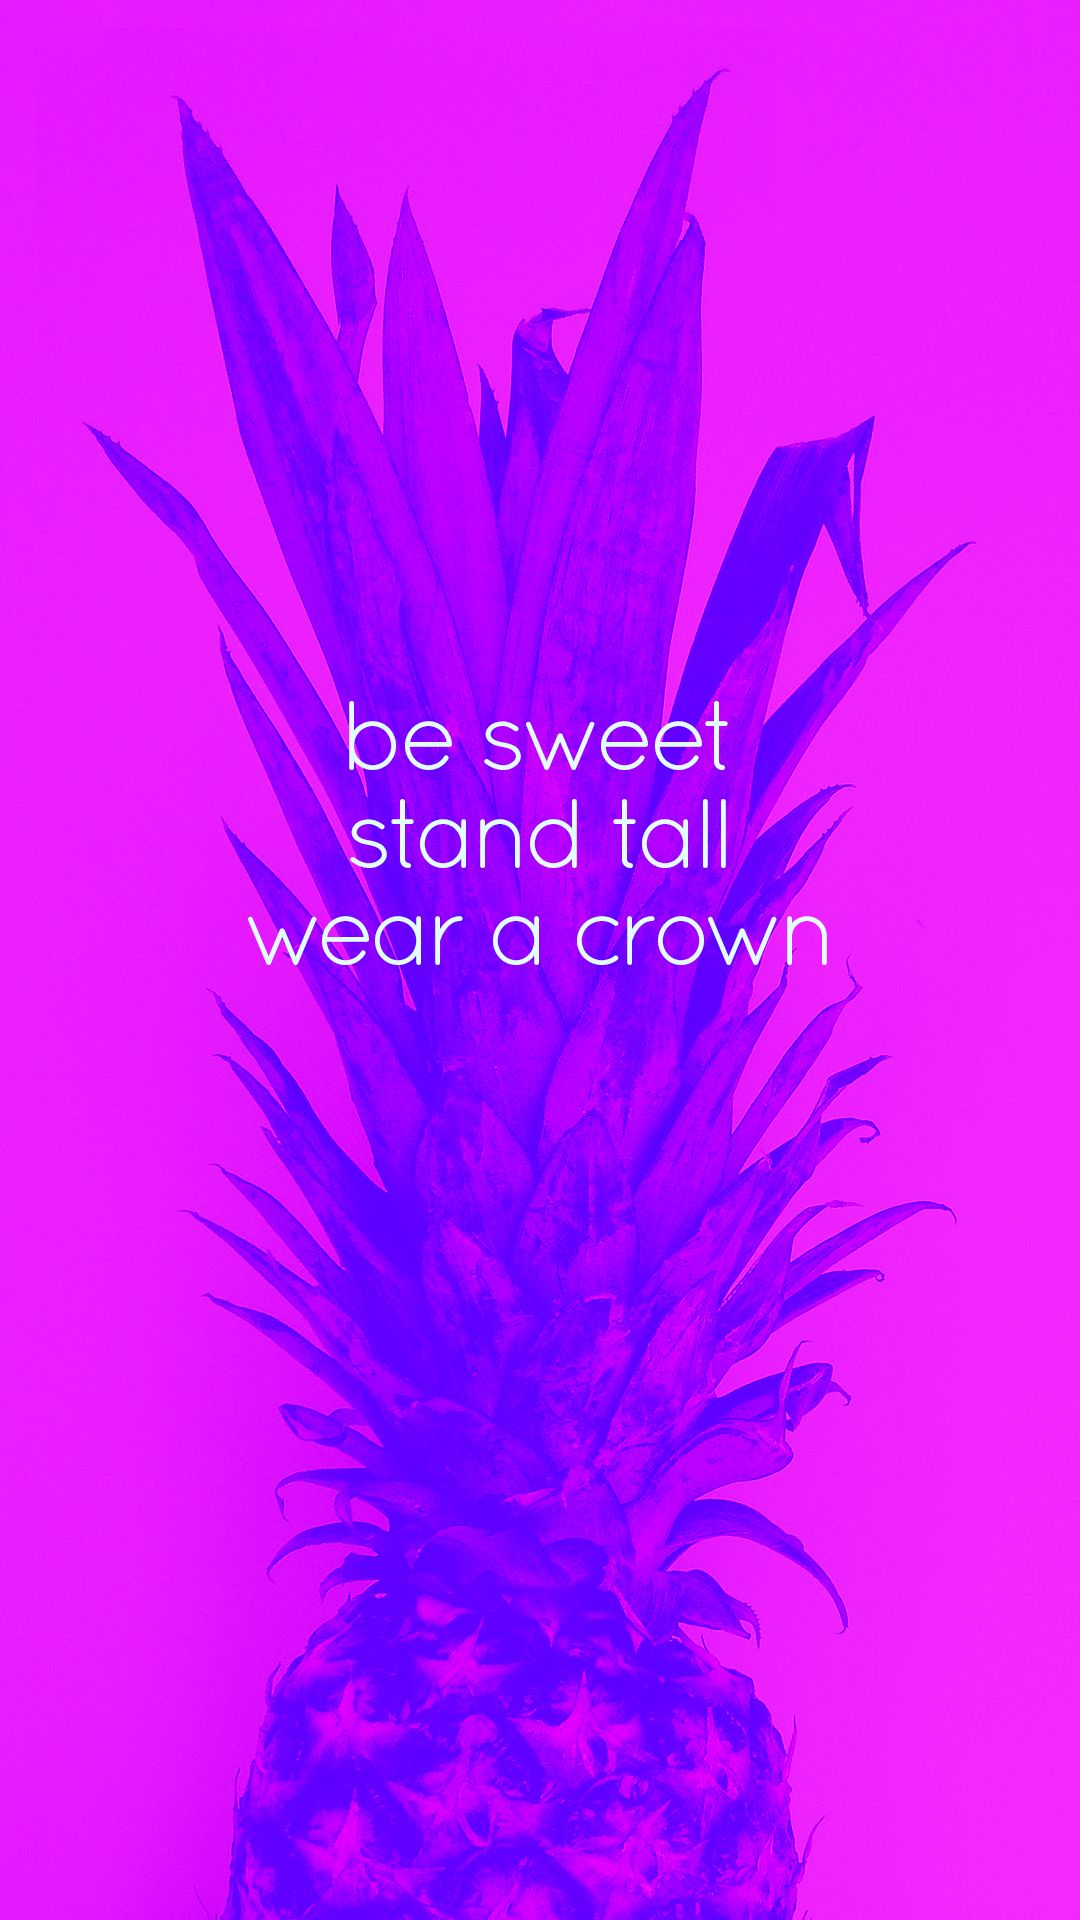 Hot pink pineapple Sweet, Tall, Crown iPhone phone